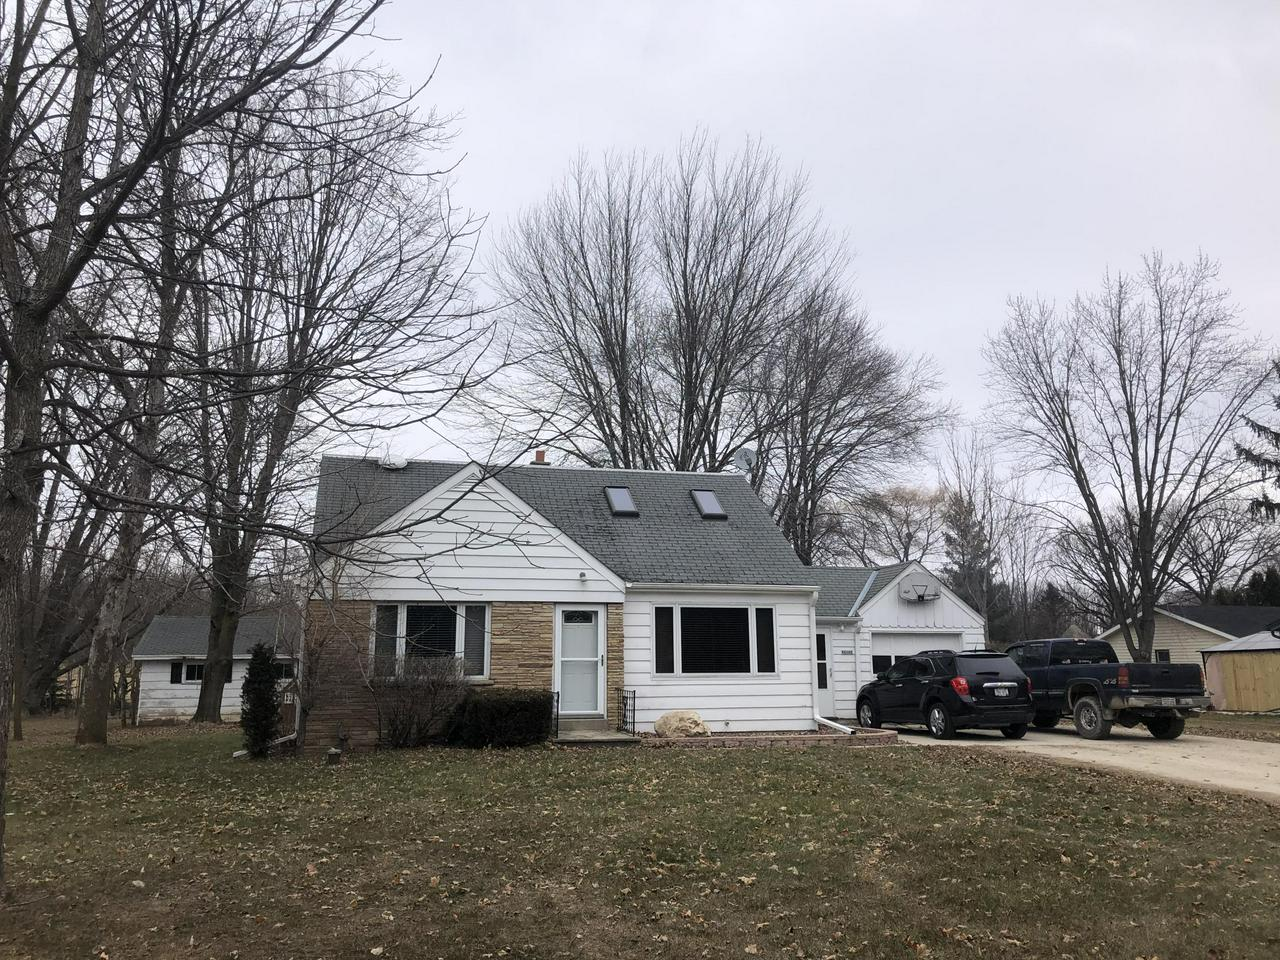 You must see this 3br 2 Bath Cape Cod on a quiet street. You will love the updated kitchen, Beautiful hardwood floors, Master Suit and Office upstairs. Breezeway with patio doors takes you to the park like back yard. Also recently updated Furnace and much more. Schedule your showing today.